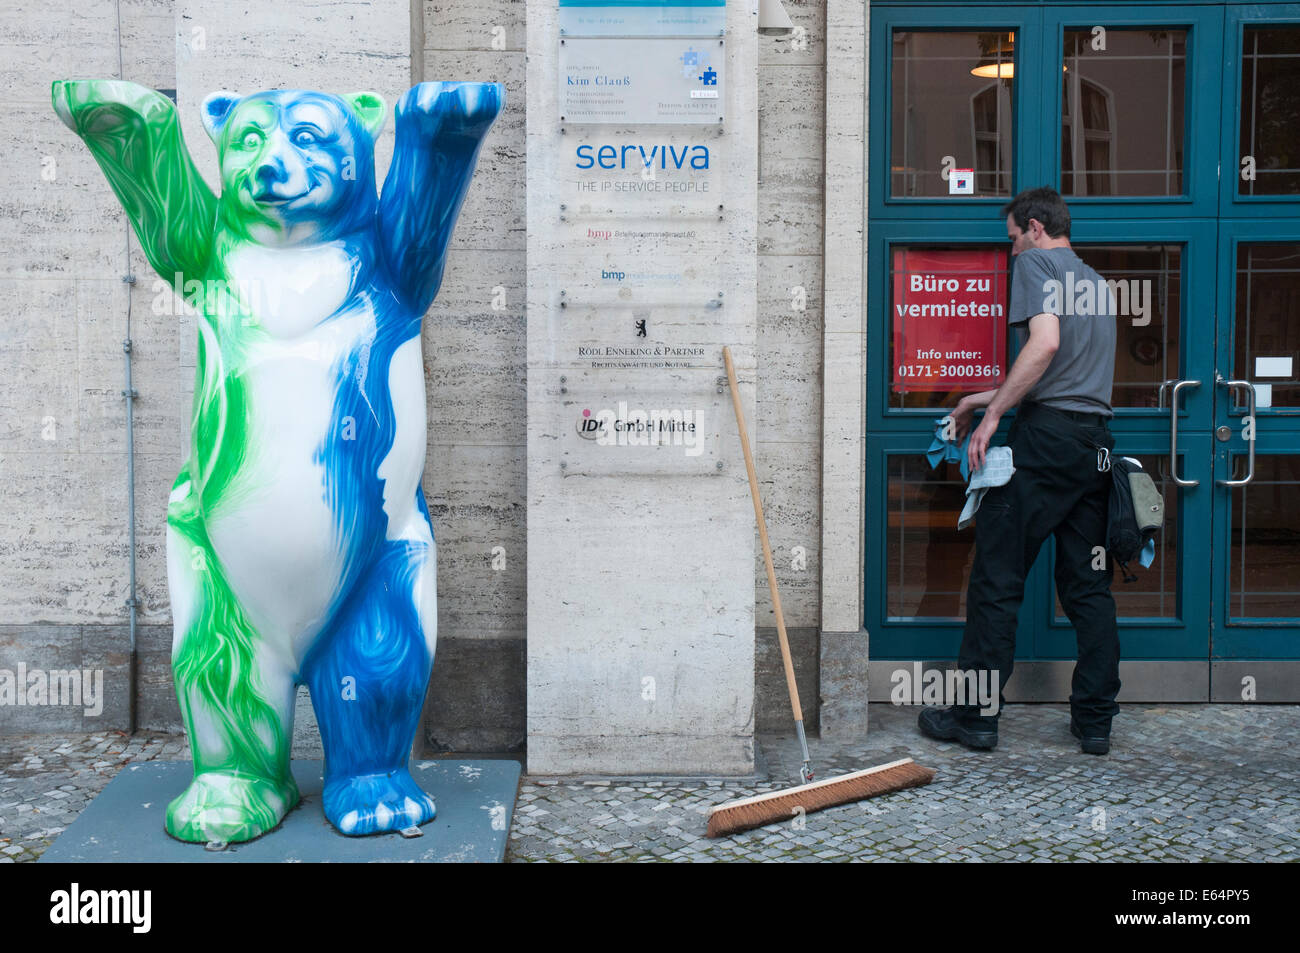 A cleaner at work at the entrance to a bank branch in Berlin.  The bear recalls the heraldic emblem of the city. - Stock Image